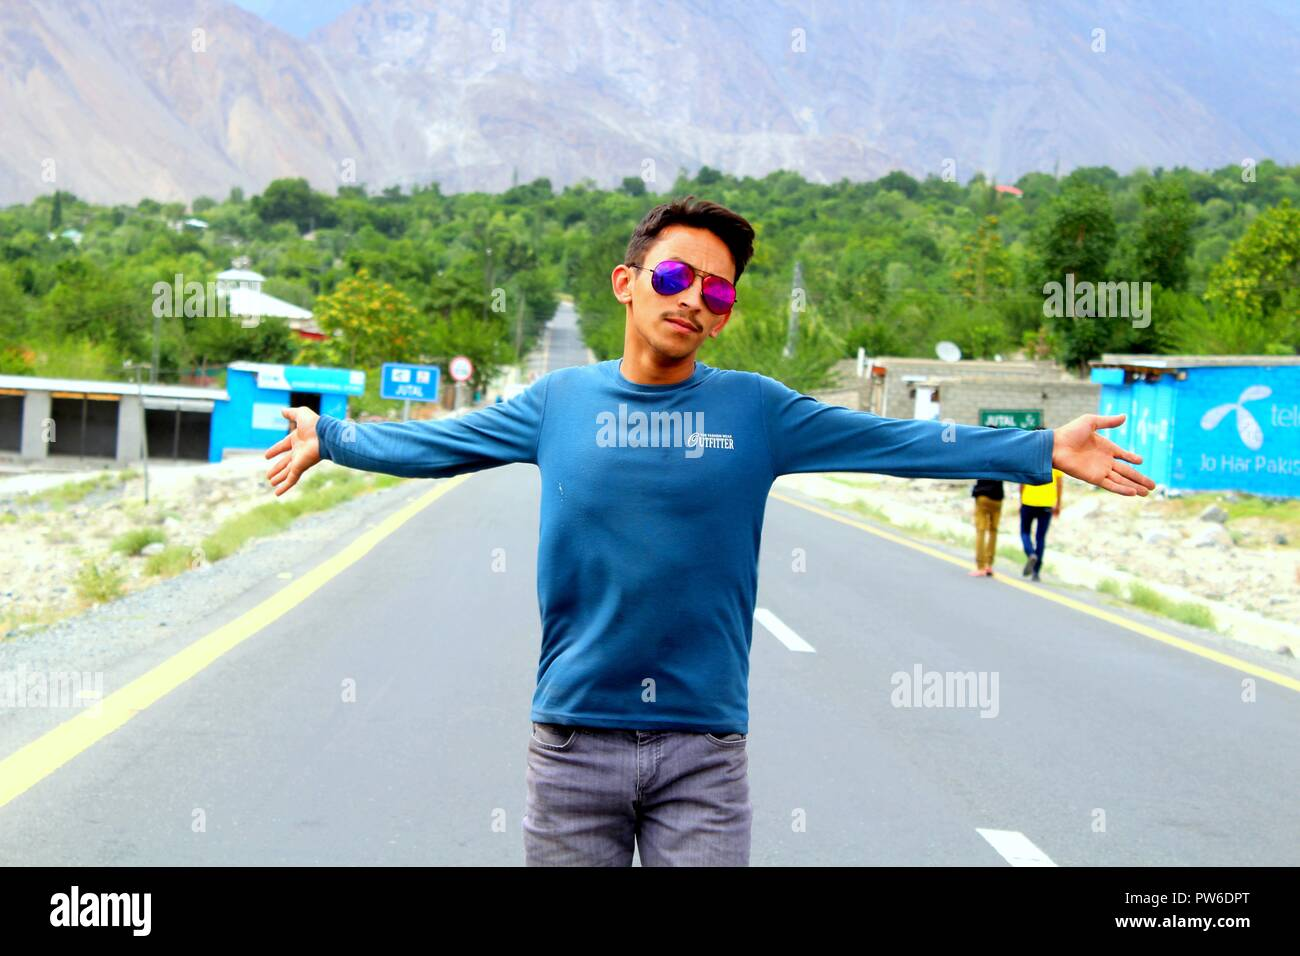 hello gyz i am danish gul from hunza - Stock Image